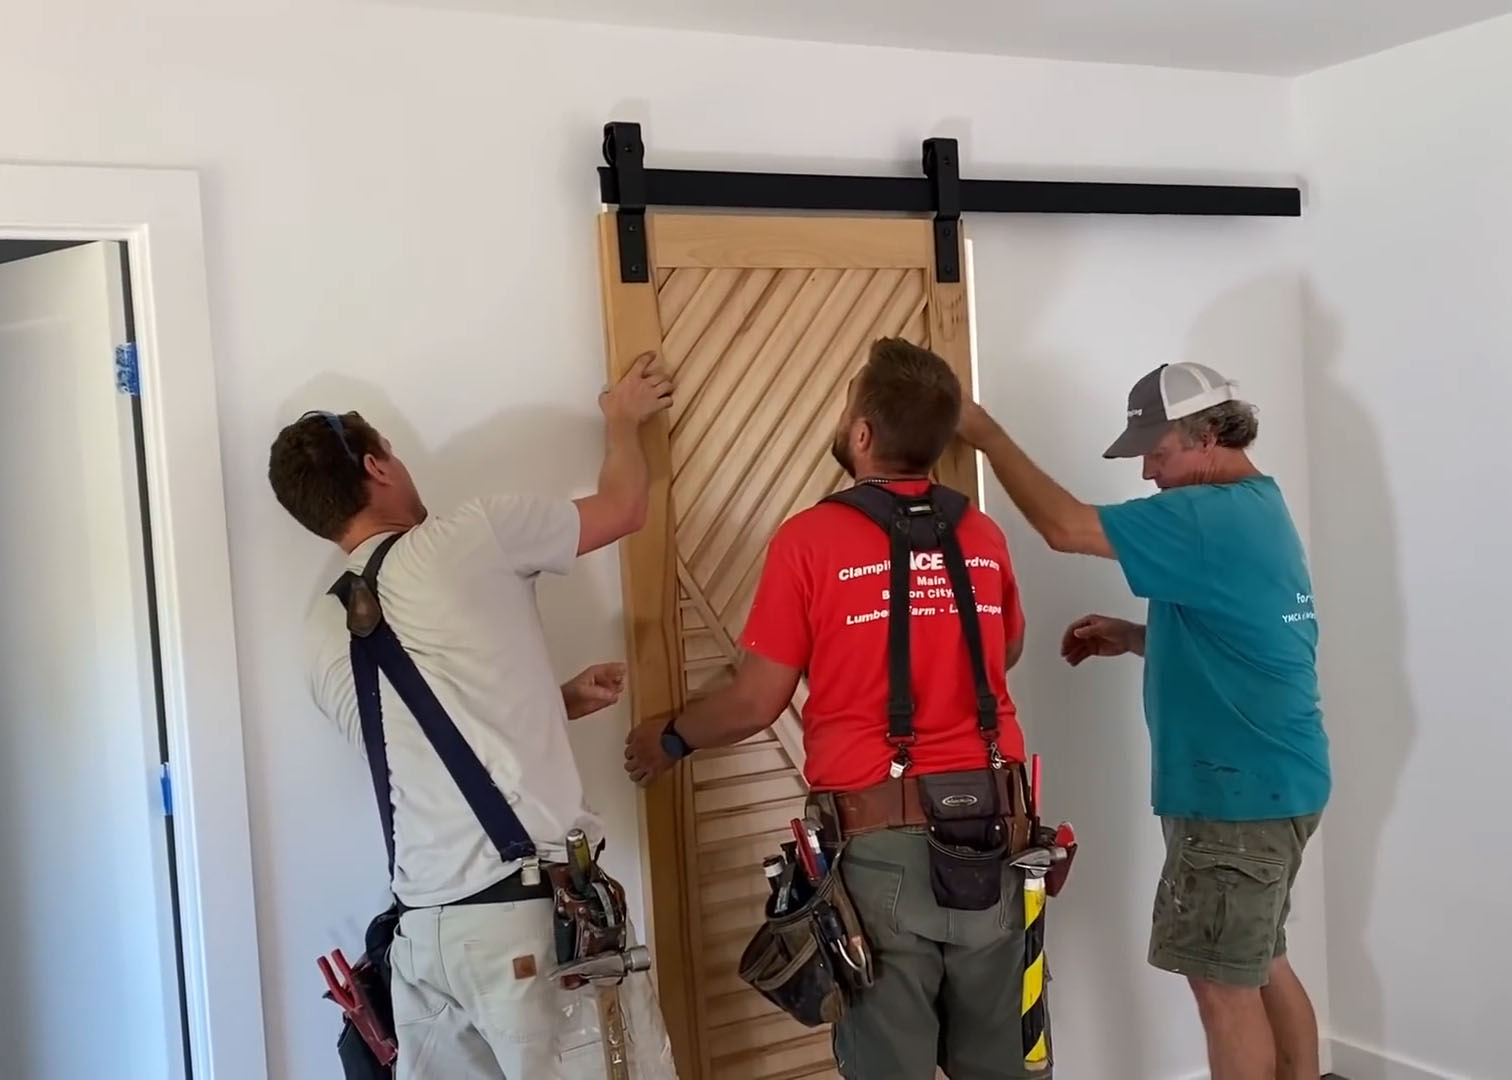 CS Barn Door Track featured on The Perkins Builder Brothers Youtube Series